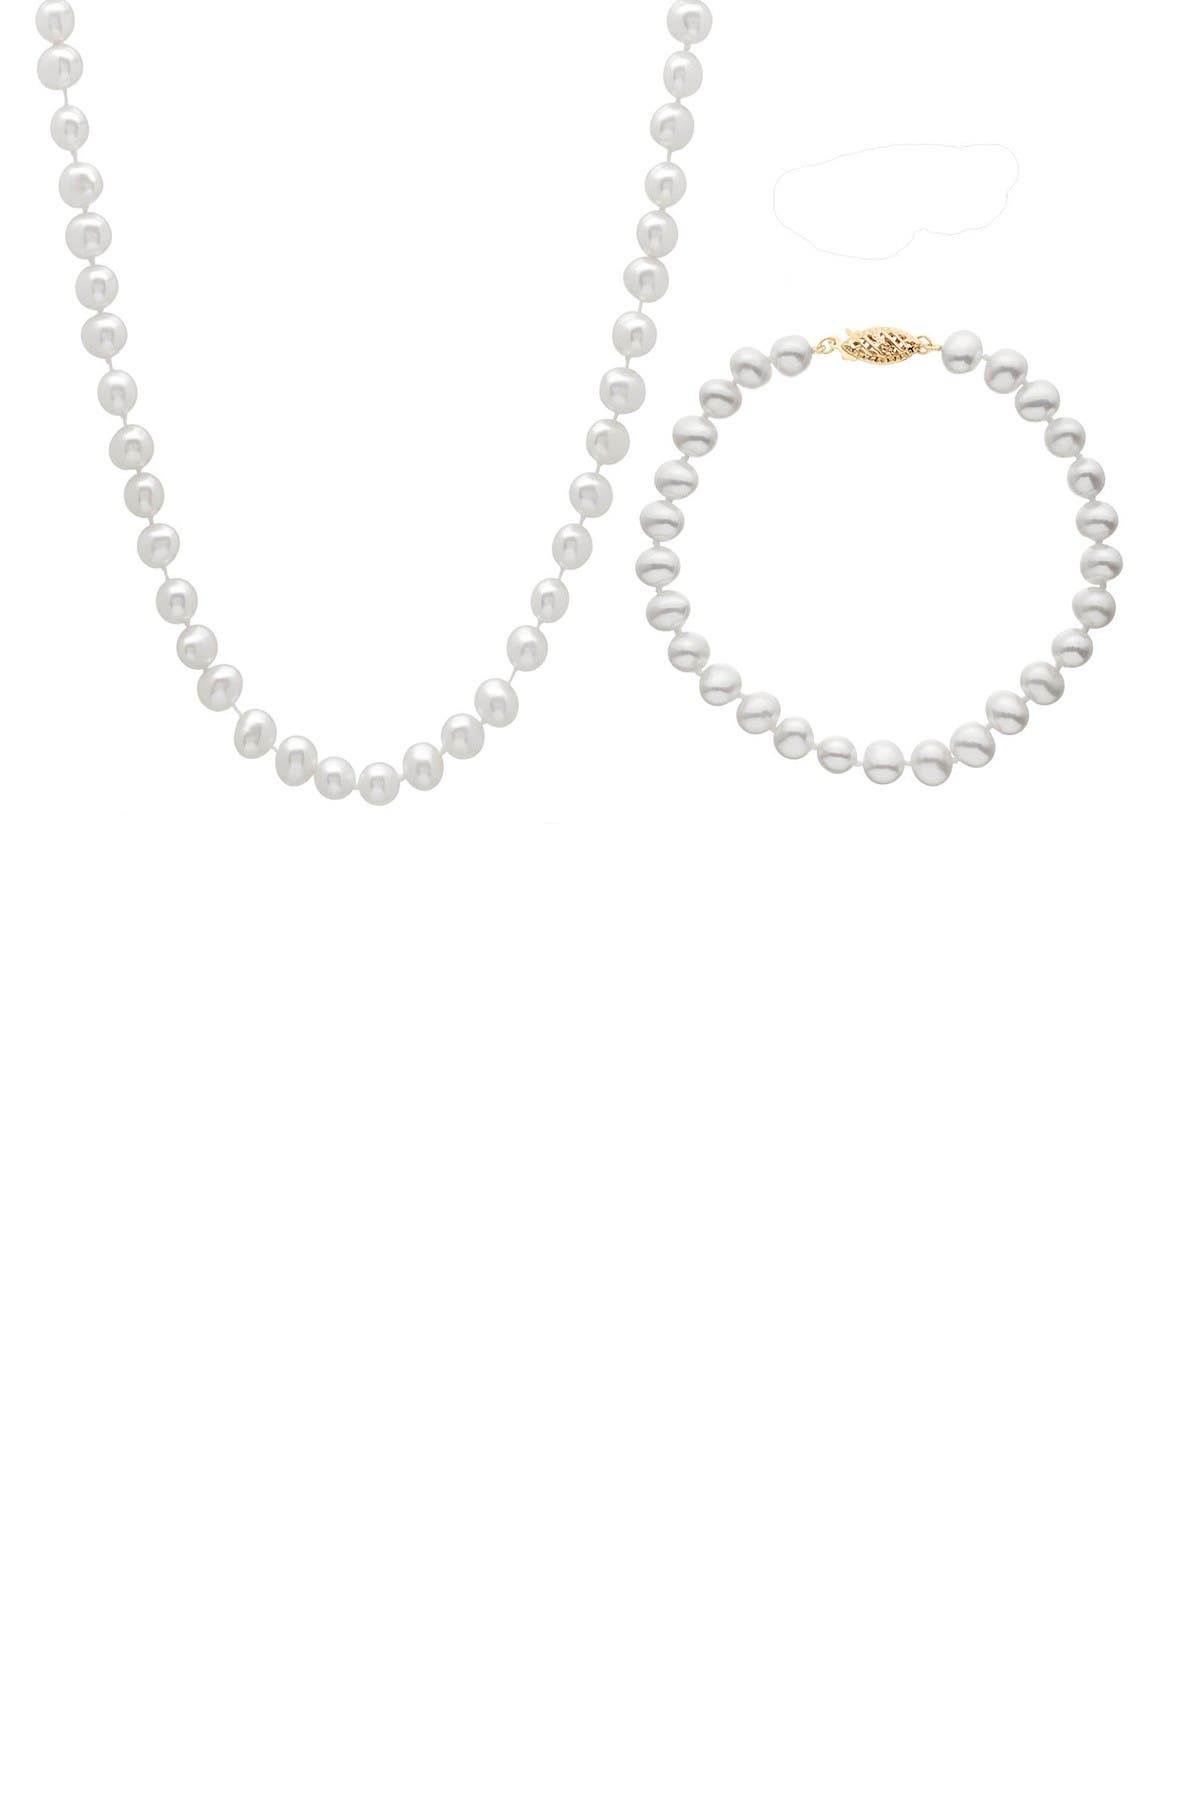 Image of Splendid Pearls 14K Gold 3-Piece 7-8mm Freshwater Pearl Set